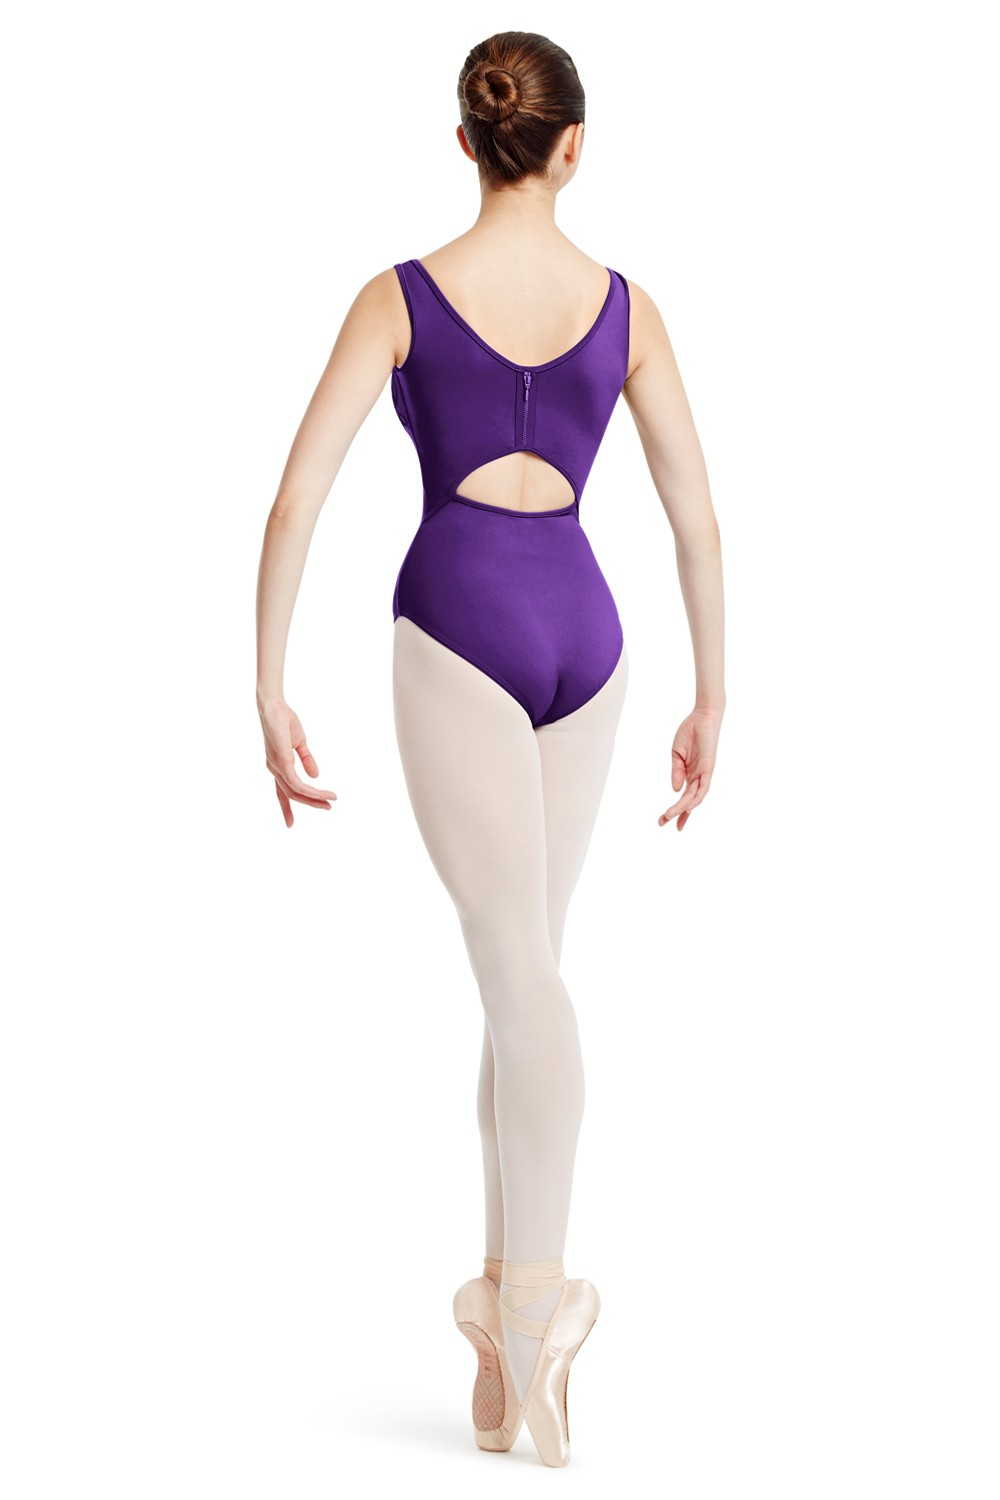 Mirella Tank Leotard  Women's Dance Leotards